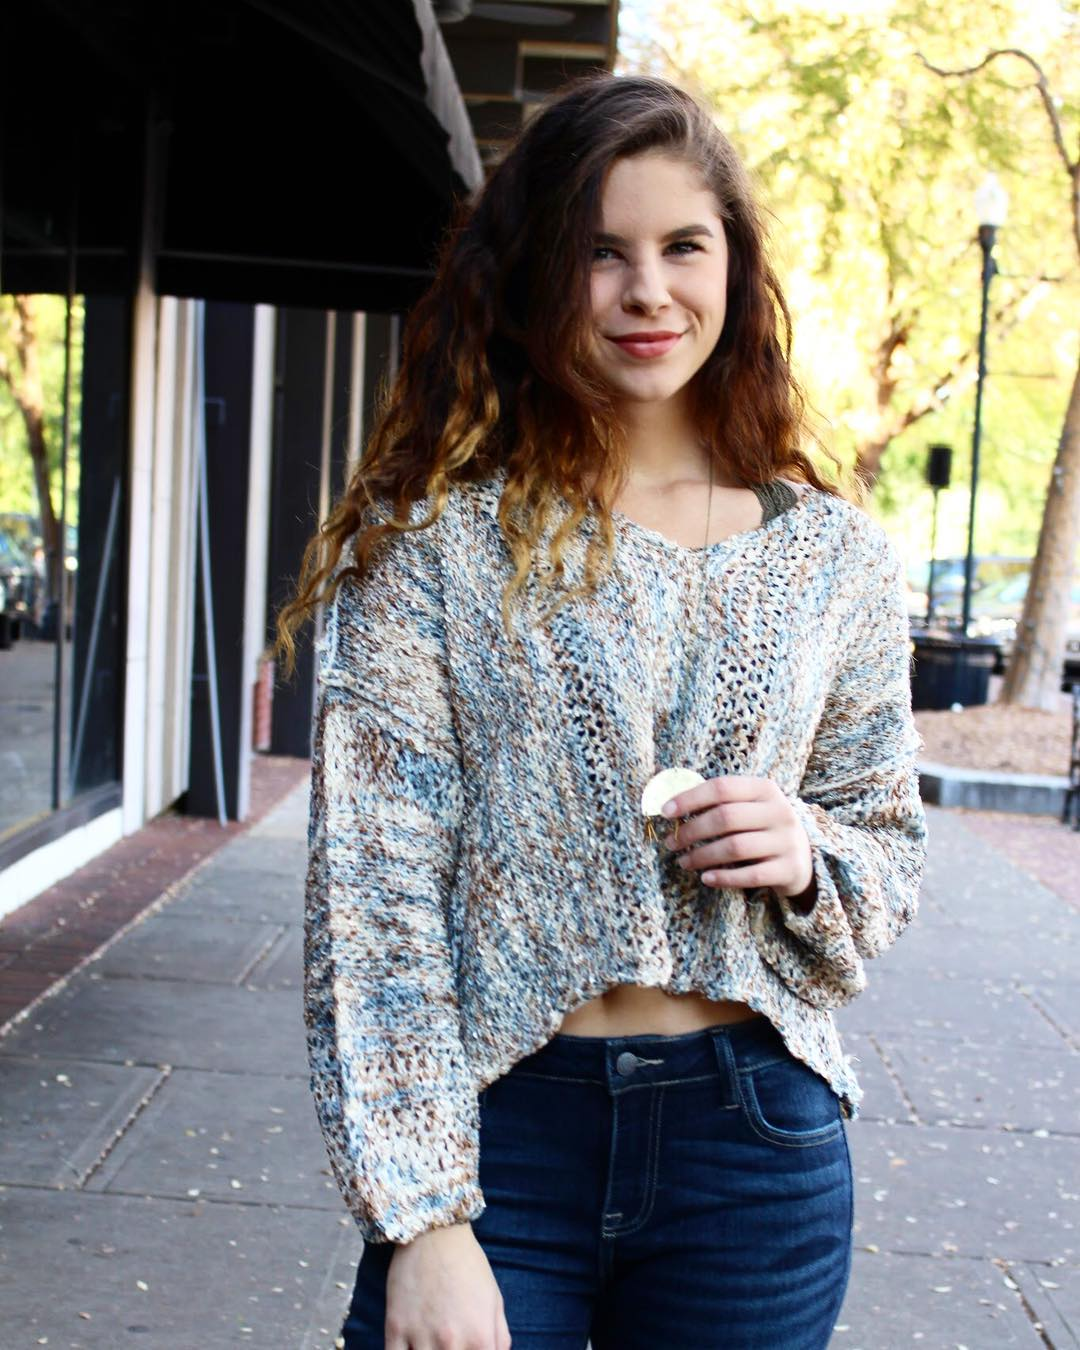 Swanky Sweater With Jeans